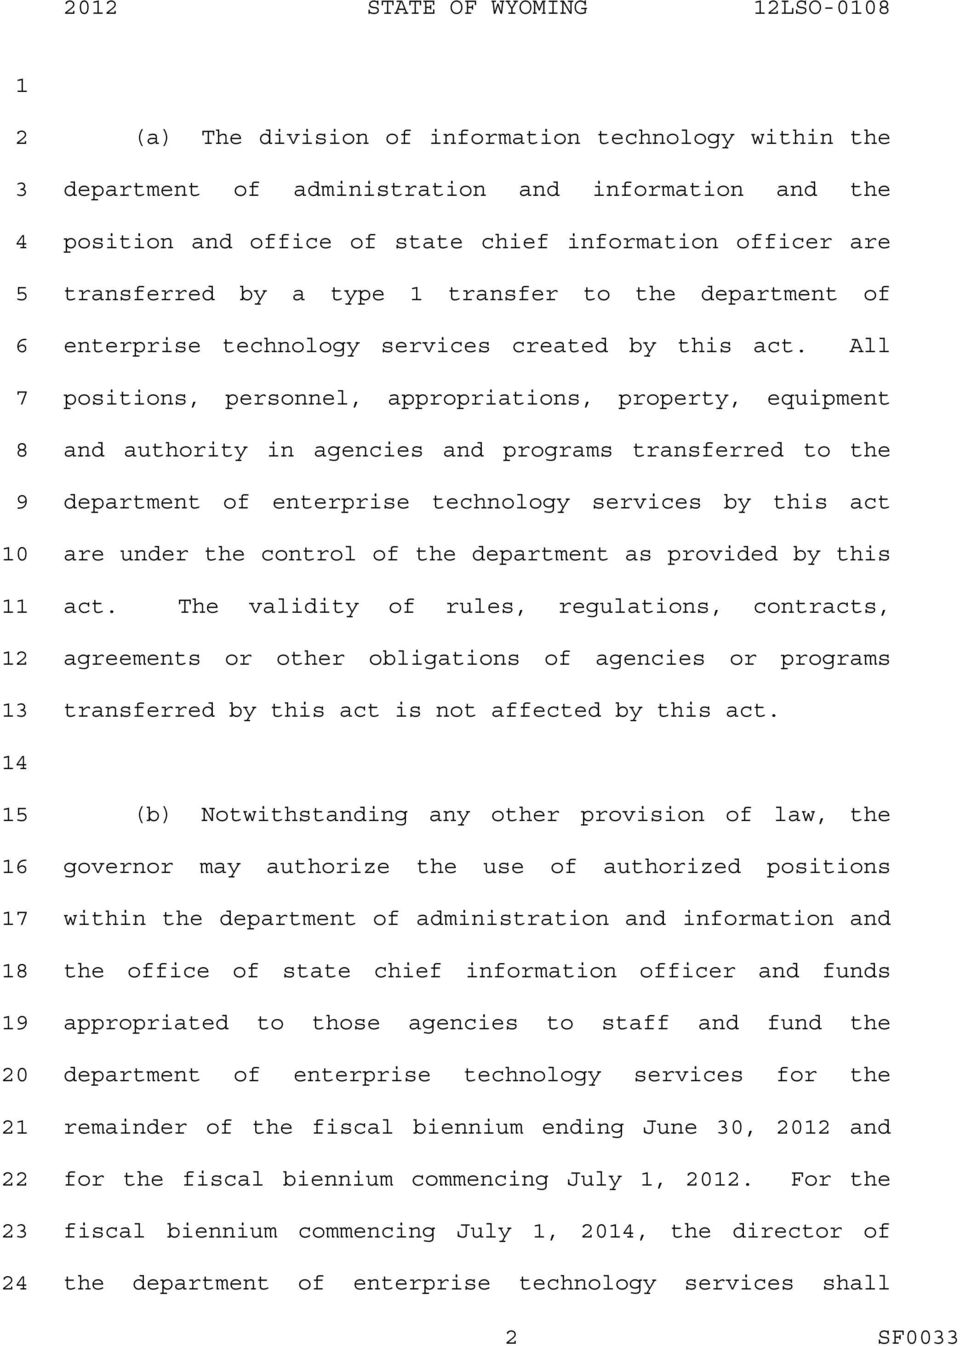 All positions, personnel, appropriations, property, equipment and authority in agencies and programs transferred to the department of enterprise technology services by this act are under the control